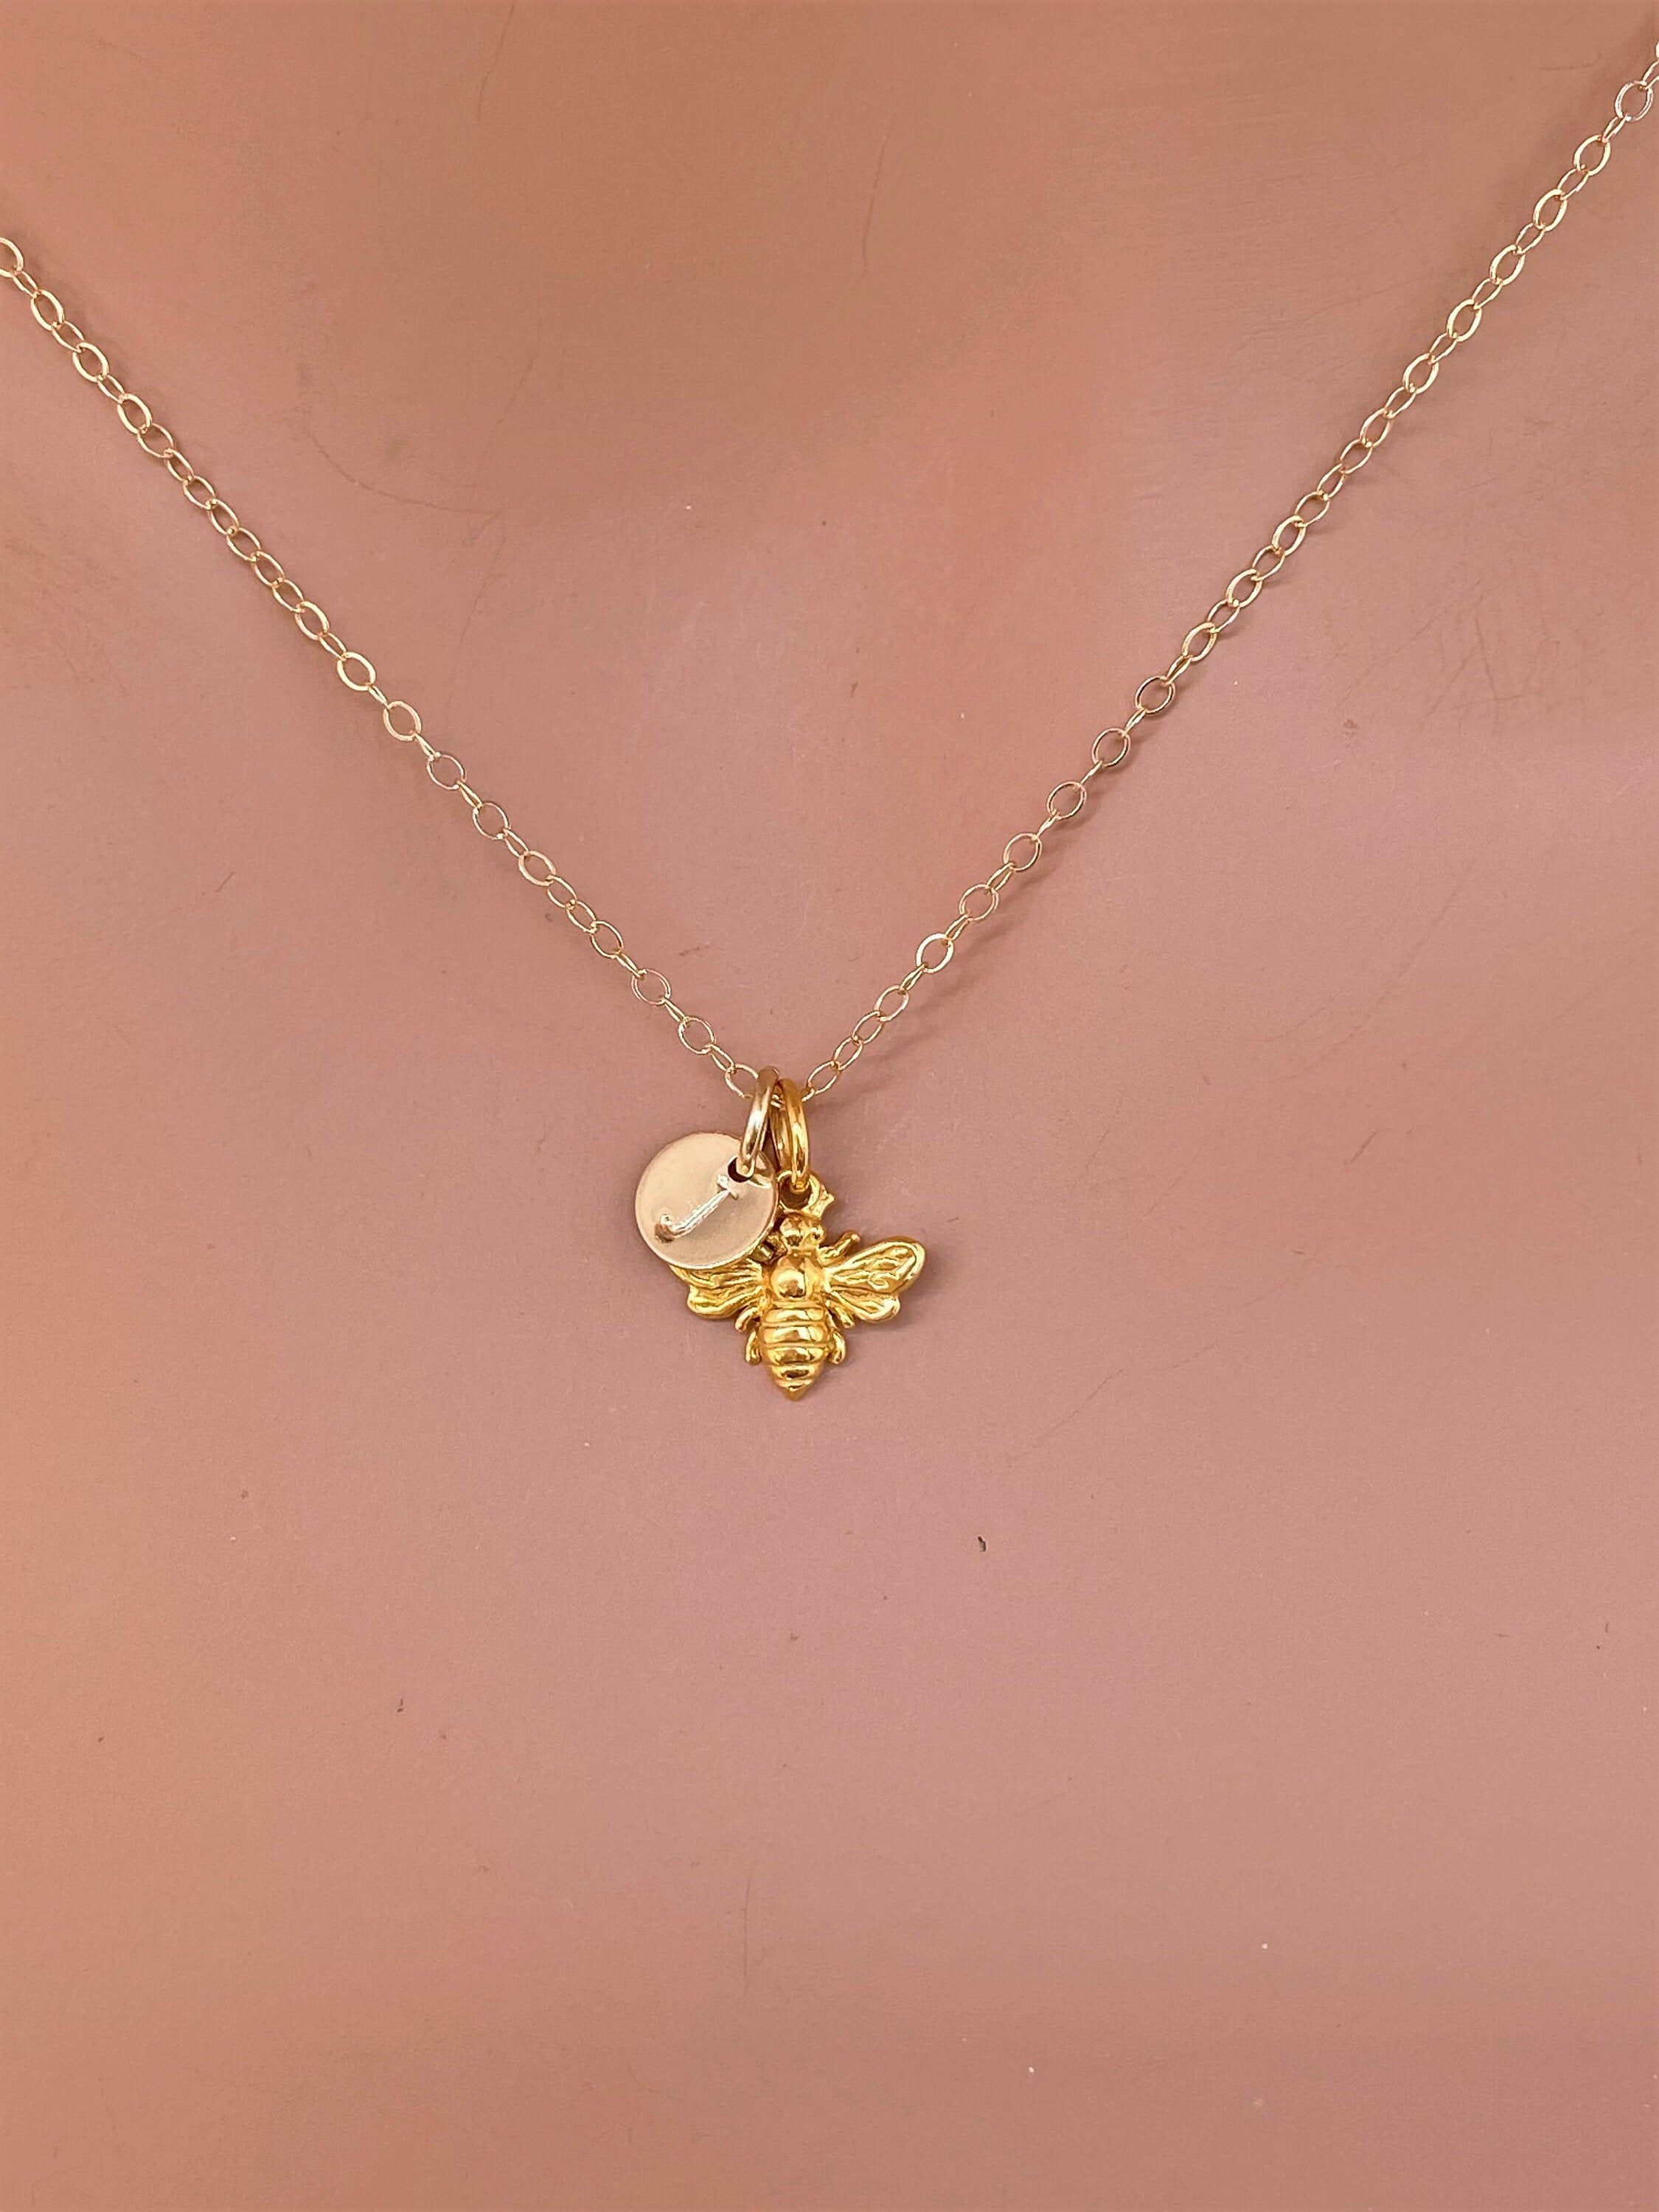 Personalized Bee Necklace 14k Solid Gold Honeybee Necklace Etsy In 2020 Real Gold Chains Bee Necklace Bumble Bee Necklace